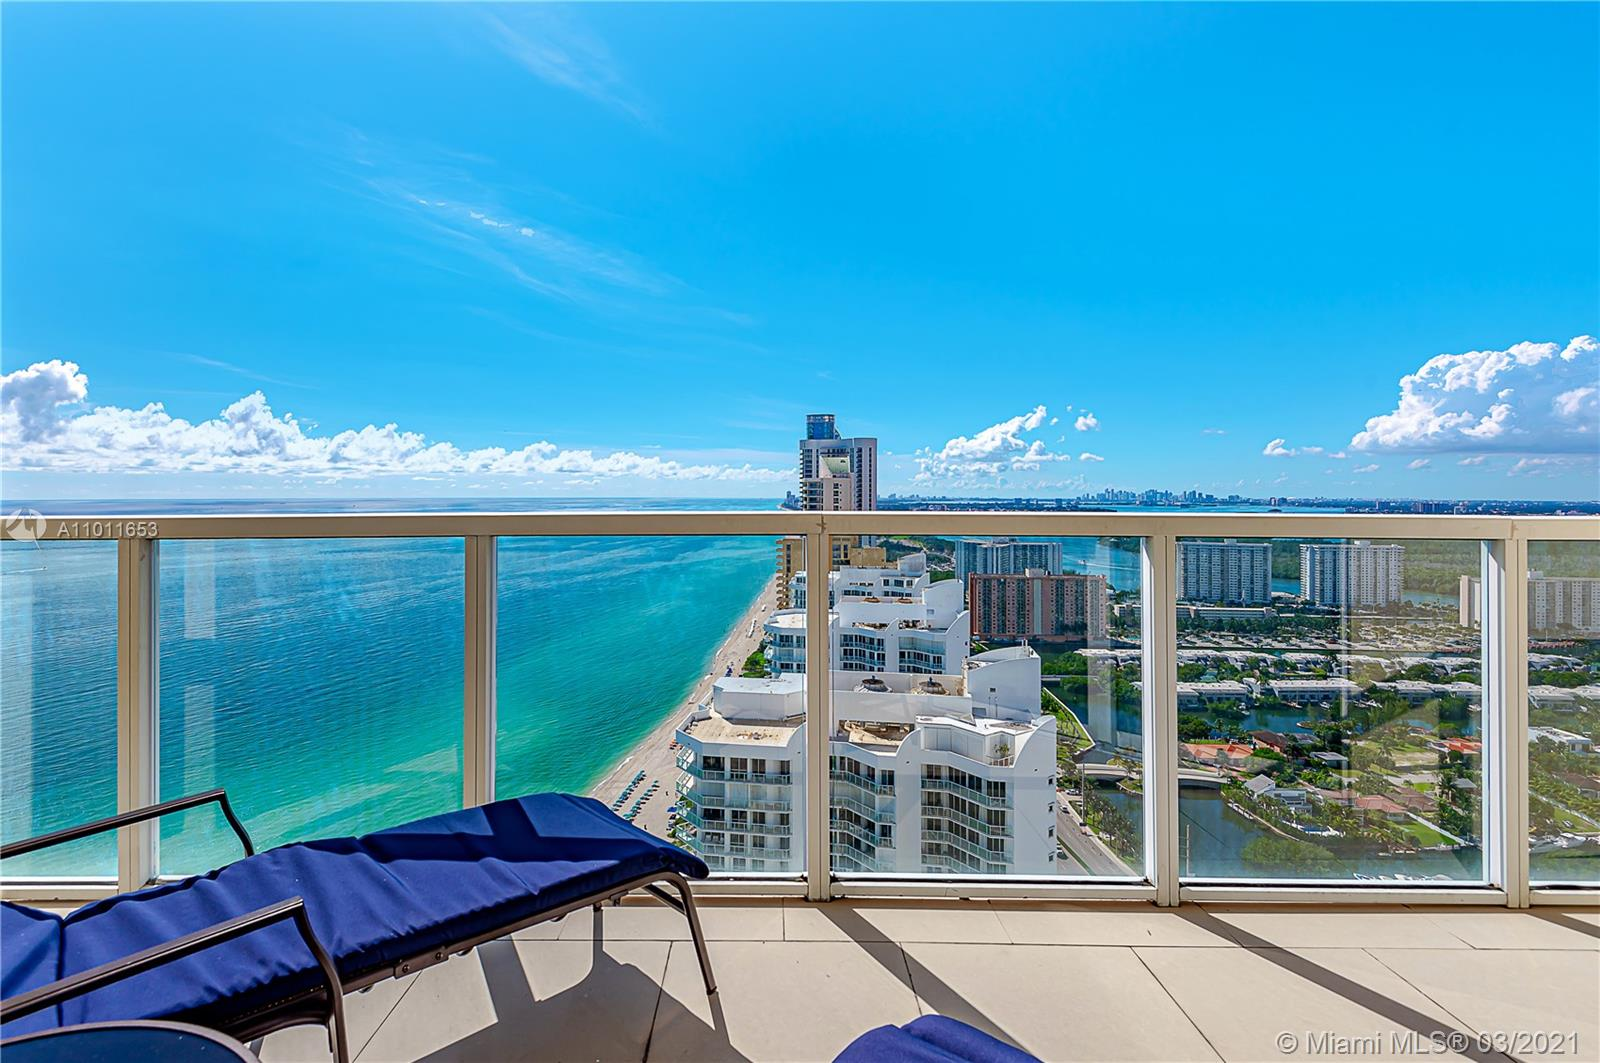 High in the sky with the best ocean & intracoastal views you can get in Sunny Isles Beach. Perched on the 41st floor this 2 bed, 2 bath residence has a split floor plan with 1266 sq/ft interior & is offered fully furnished. Open kitchen with granite countertops, stainless steel appliances, & breakfast bar. The master bedroom offers amazing ocean views & features a large walk in closet & on-suite bathroom with dual sinks, huge soaking tub, & separate shower. Second bedroom has spectacular ocean views, a walk in closet, & on-suite bath. Unique, extended balconies (top 5 floors) & washer/dryer. La Perla permits 12 leases/year-no minimum stay. 4109 is currently renting for $6k/month short term. Buyer can assume management & all rentals. Fitness center, pool, beach services, & low HOA fees.